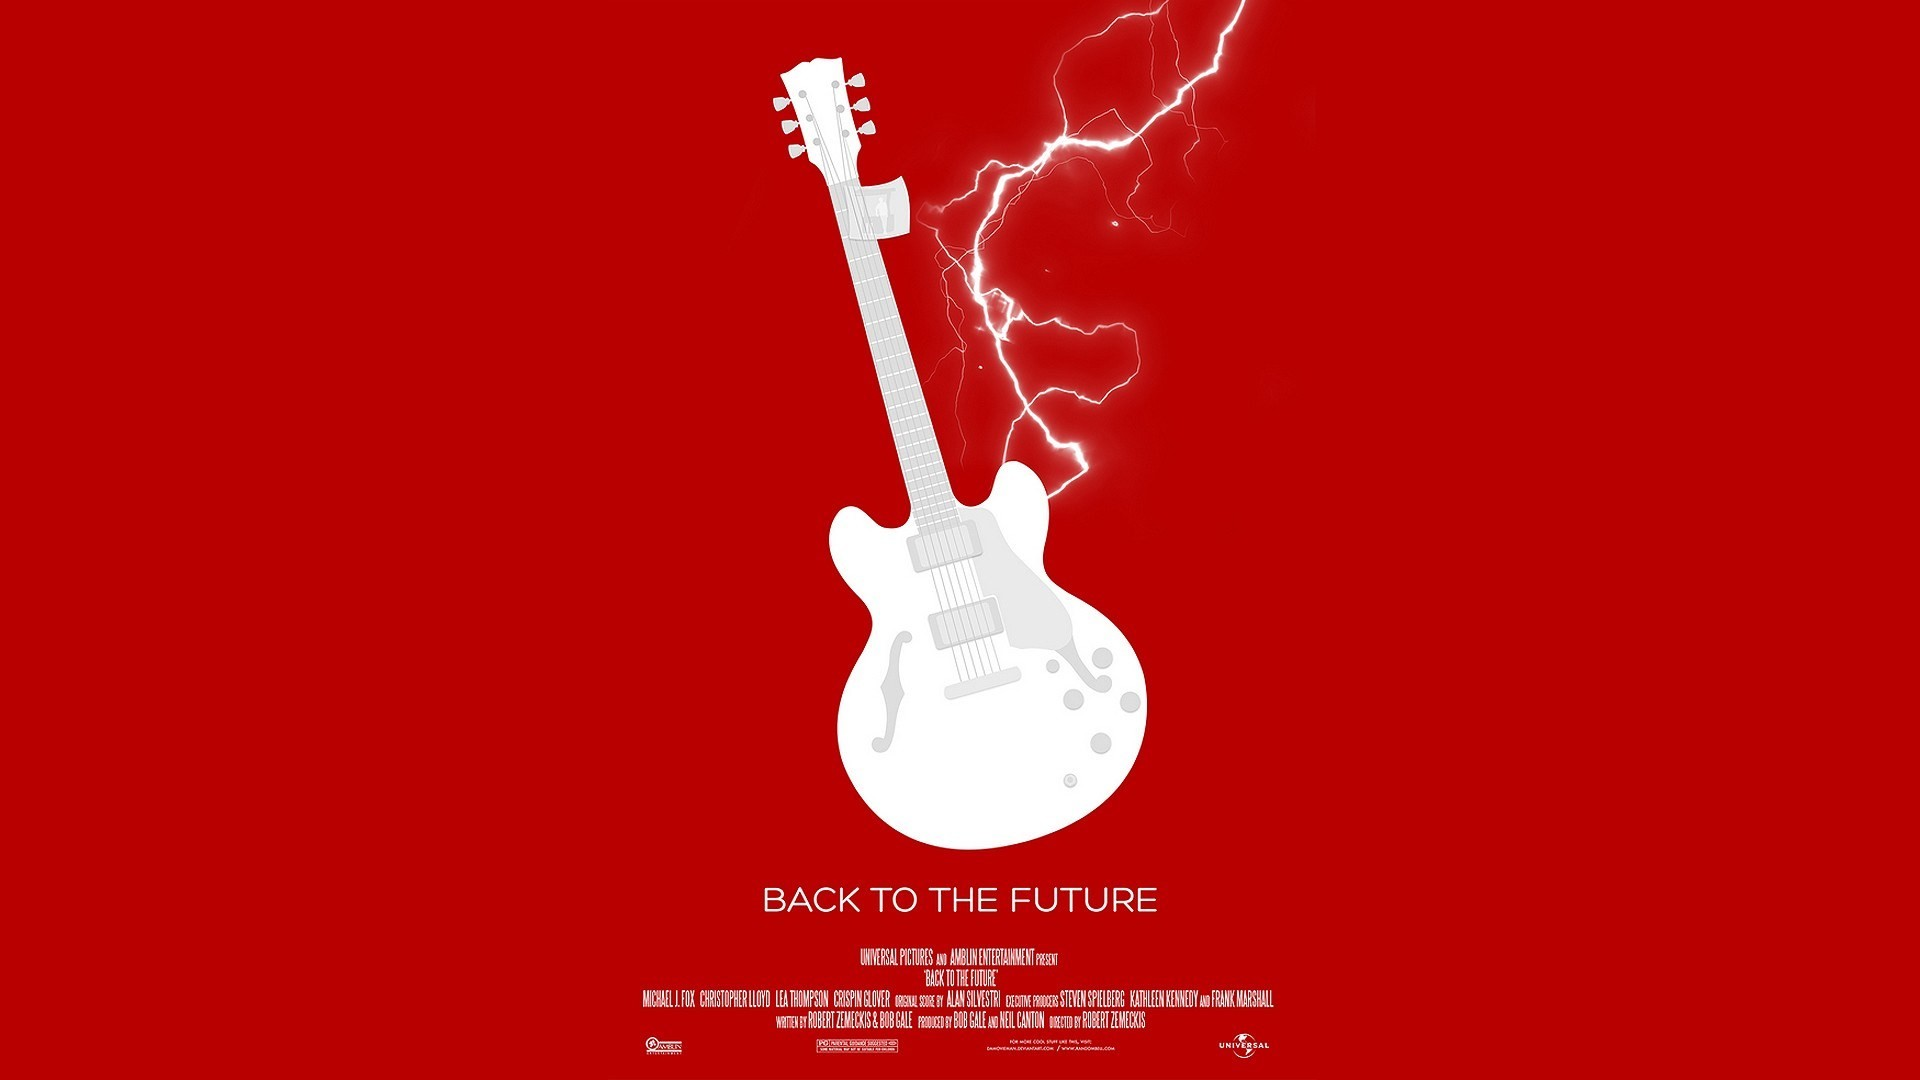 free high resolution wallpaper back to the future